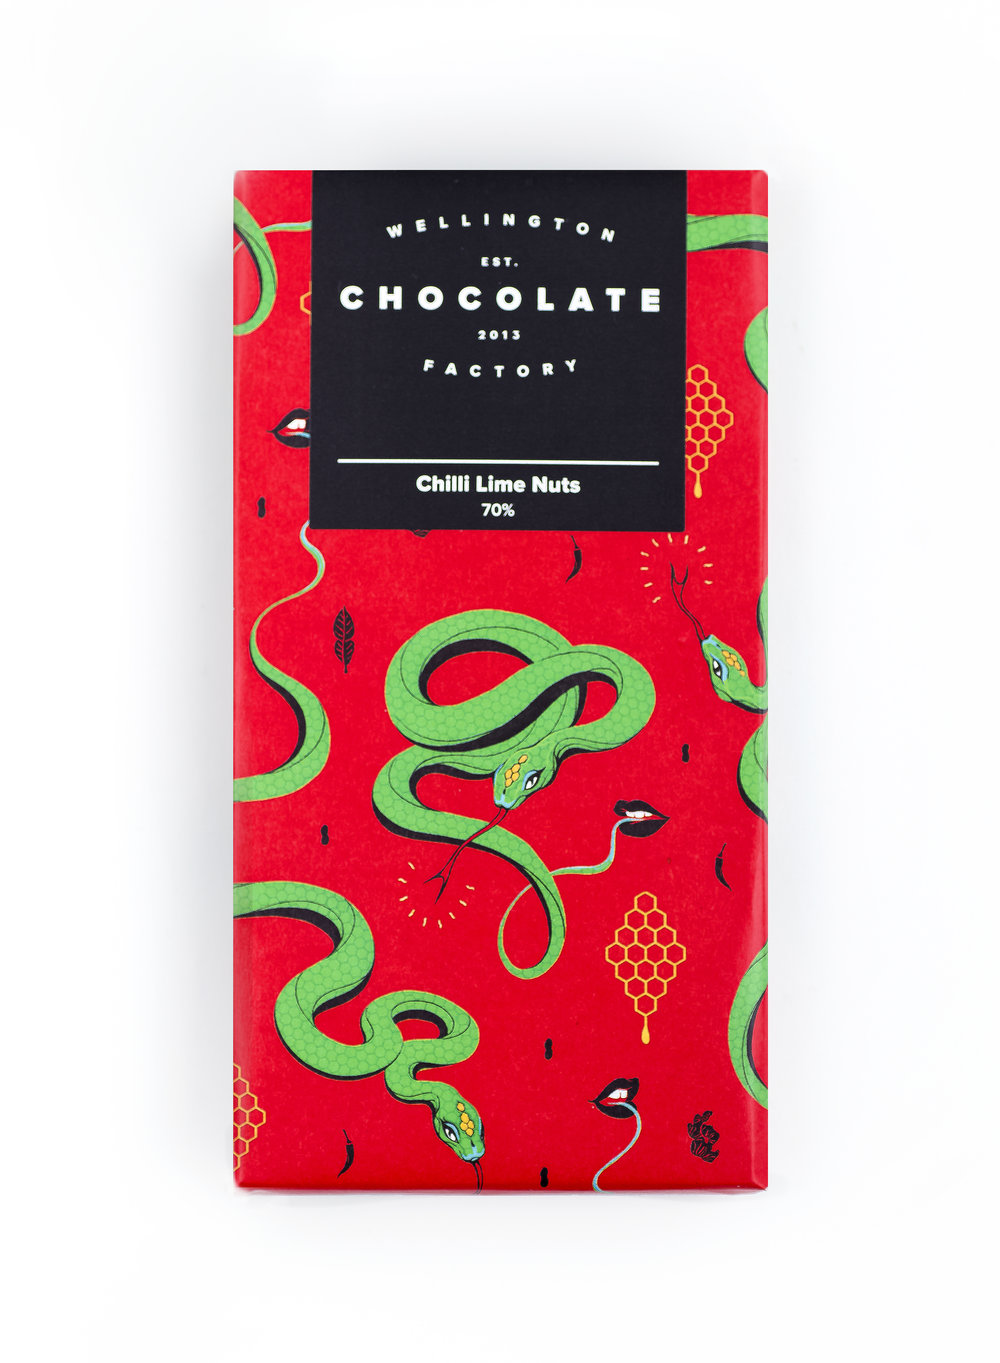 Chilli Peanuts Chocolate Bar - Our special house blended chocolate combined with fiery and zesty seasoned peanuts.